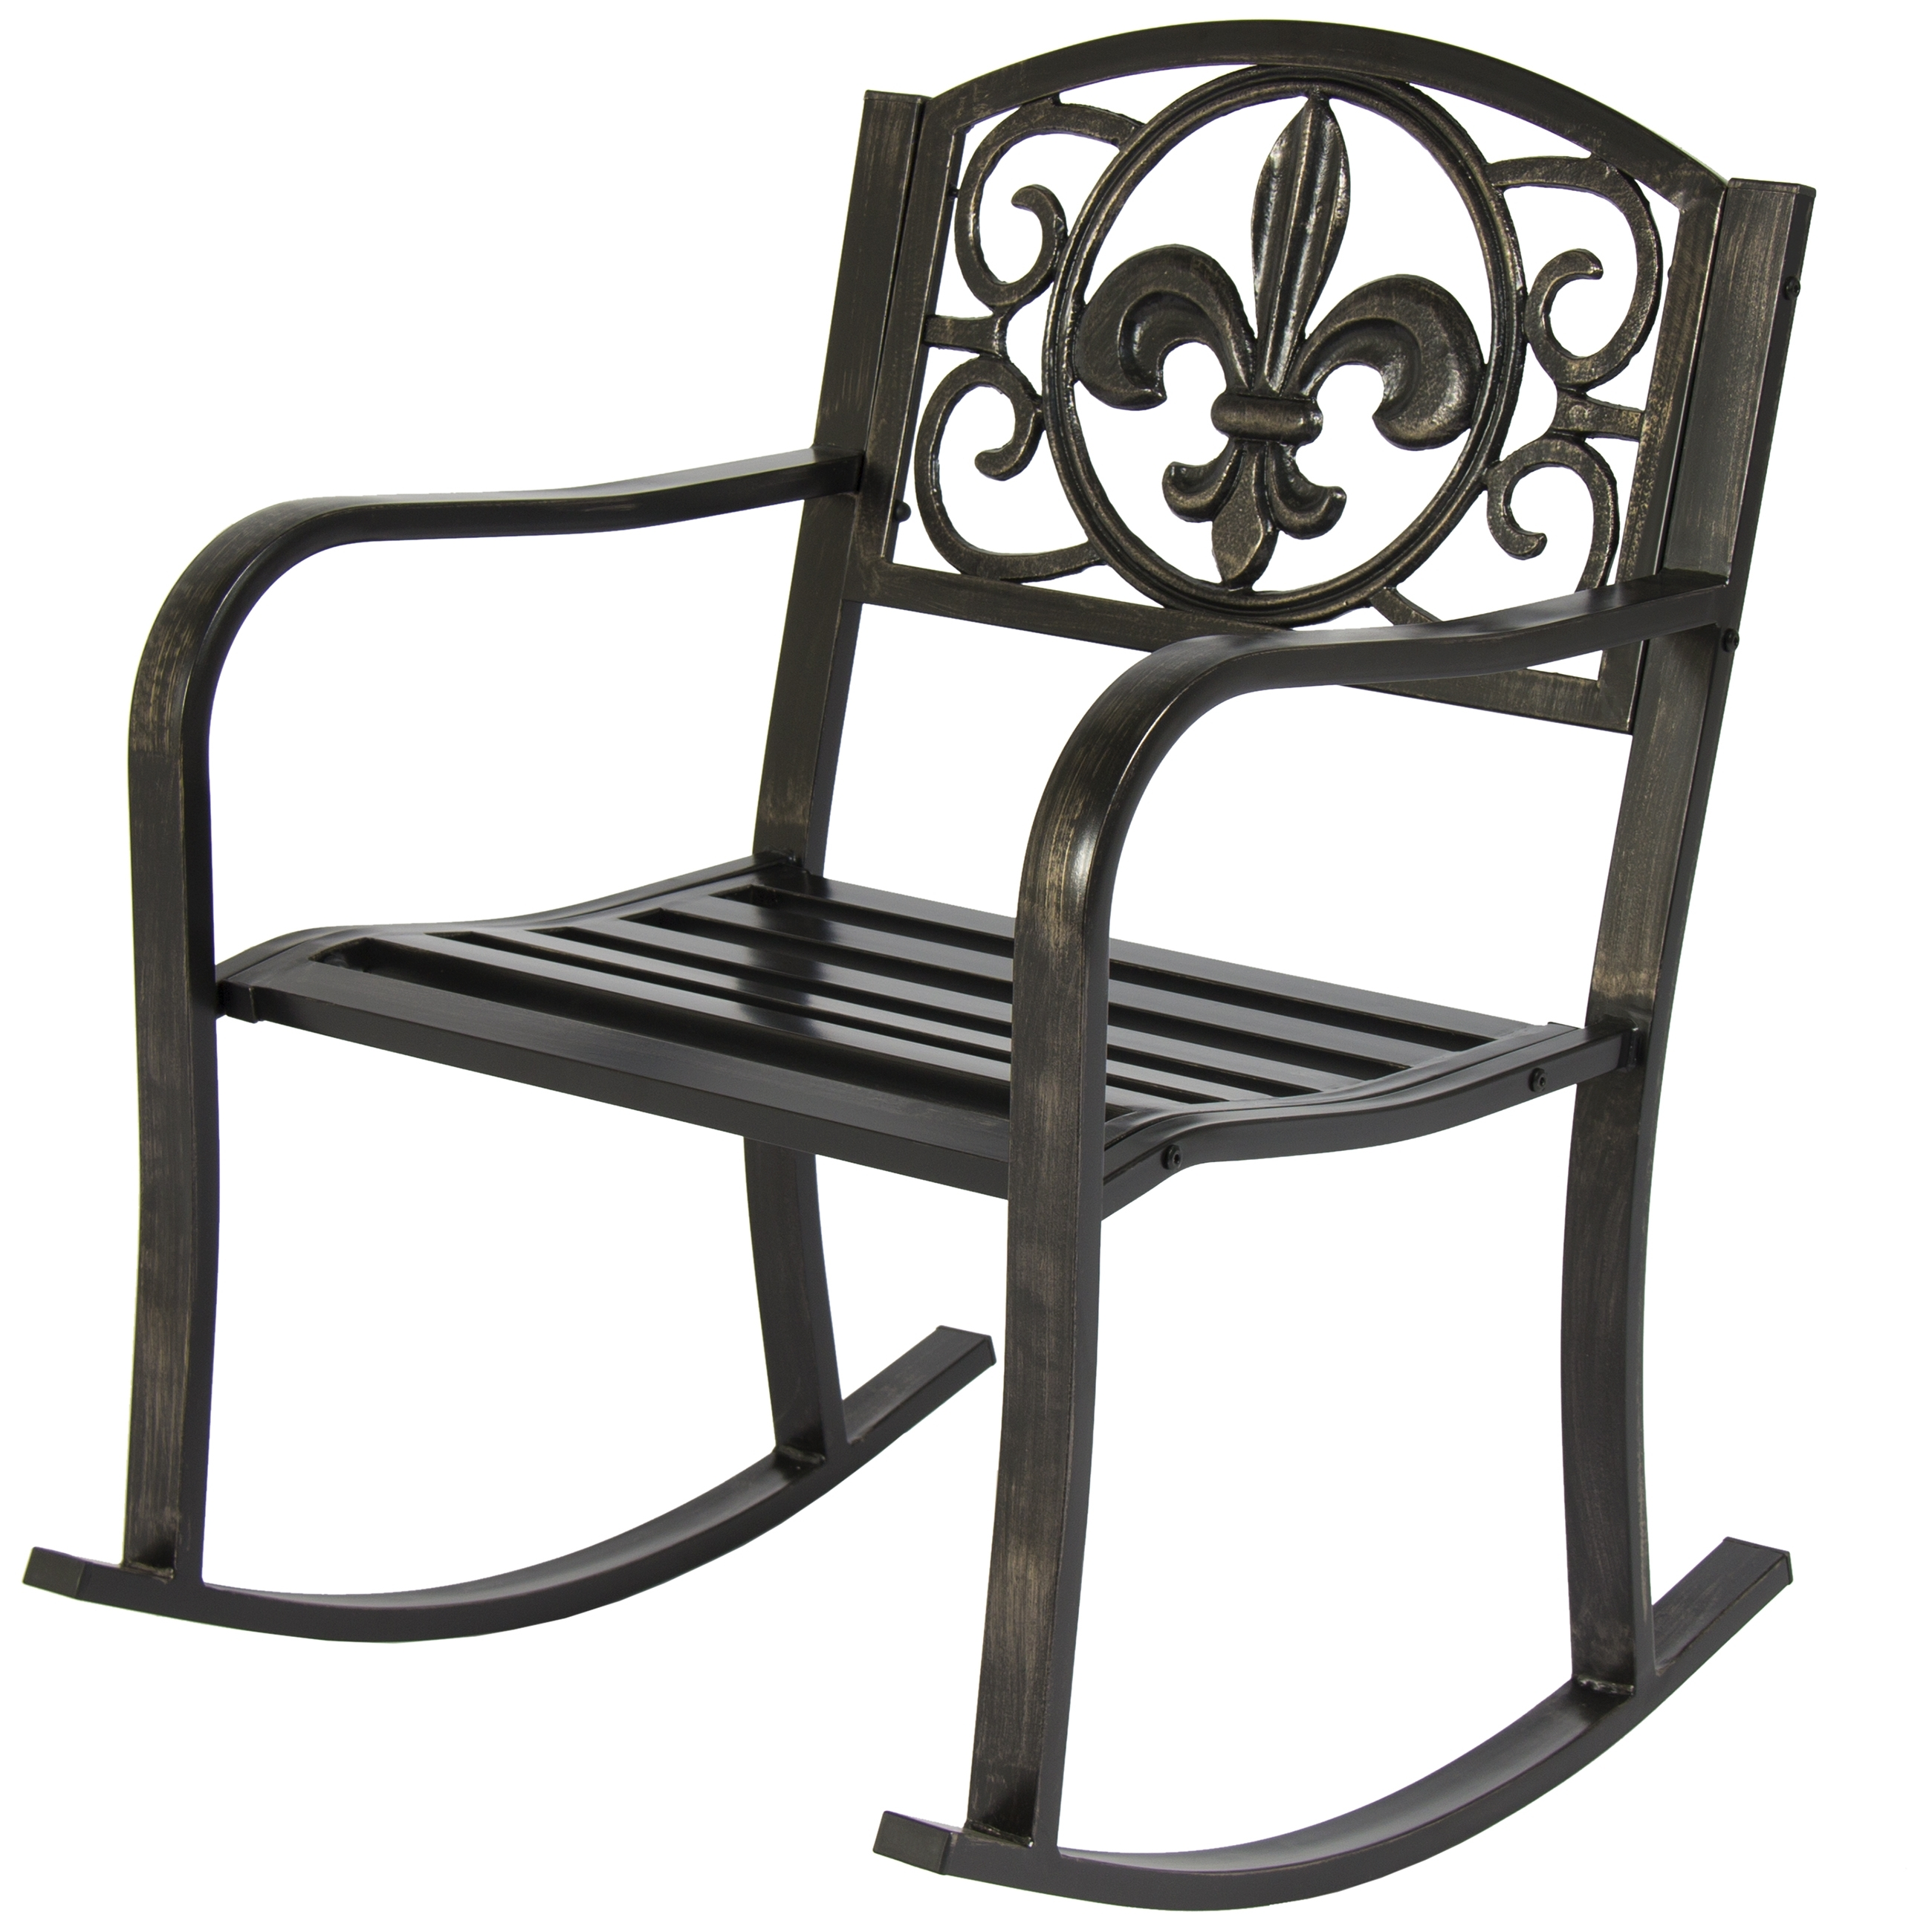 Outdoor Patio Metal Rocking Chairs Intended For Well Known Best Choice Products Metal Rocking Chair Seat For Patio, Porch, Deck (View 11 of 15)